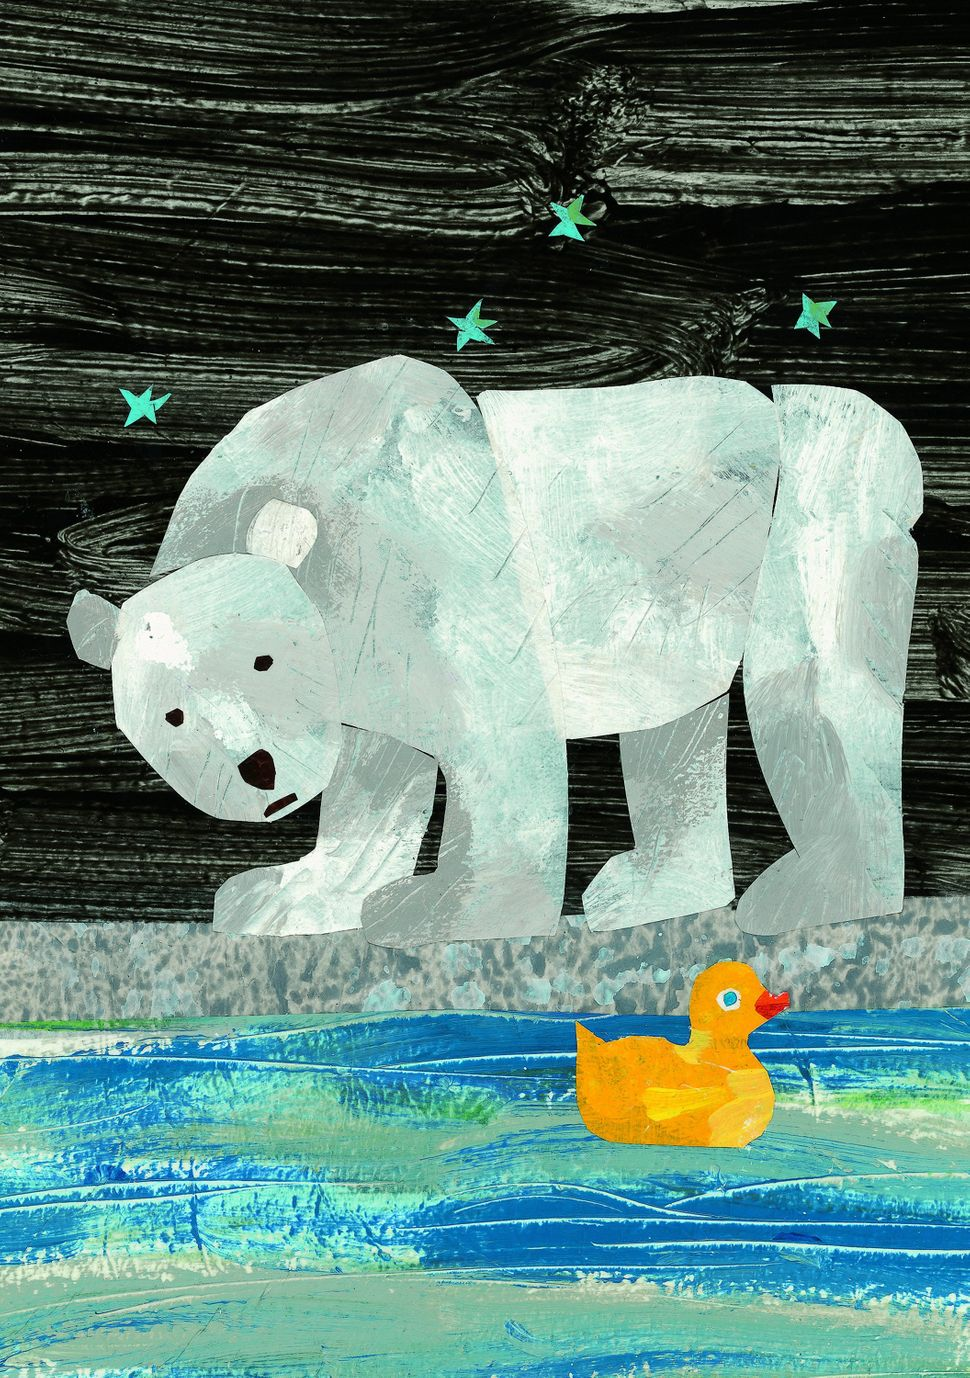 Illustration from <i>10 Little Rubber Ducks</i> © 1990 by Eric Carle.